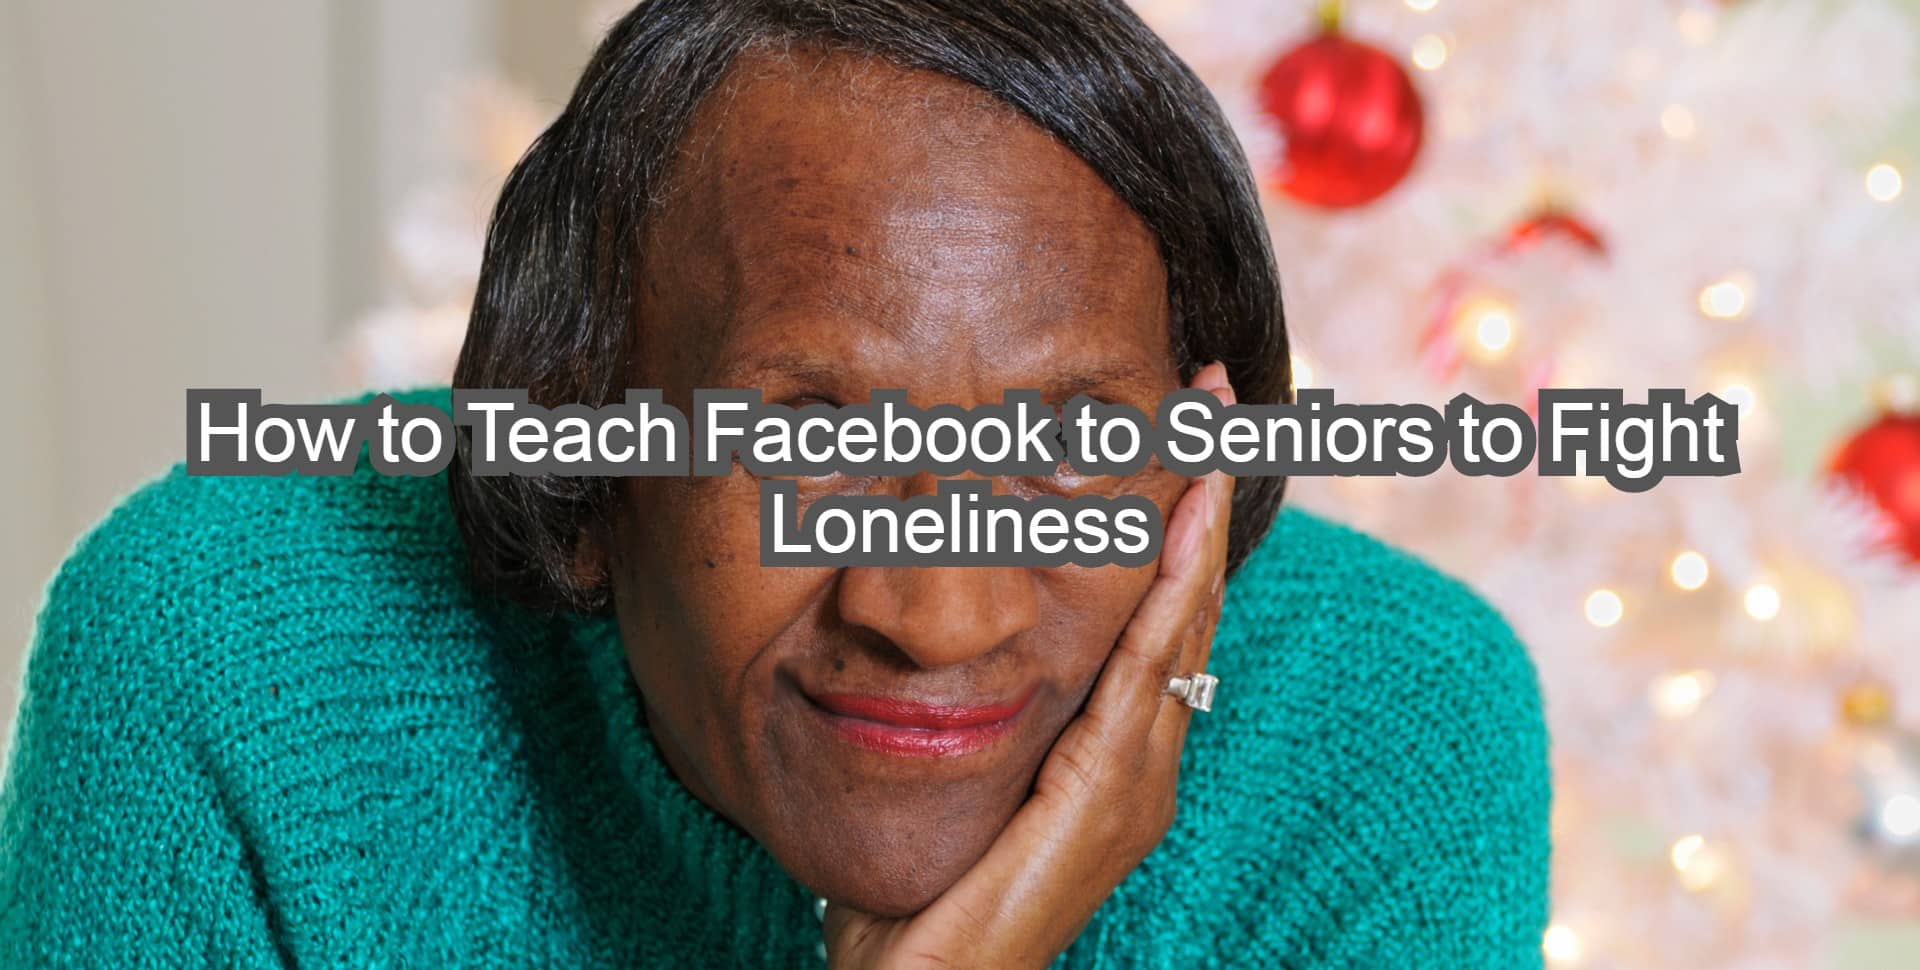 How to Teach Facebook to Seniors to Fight Loneliness